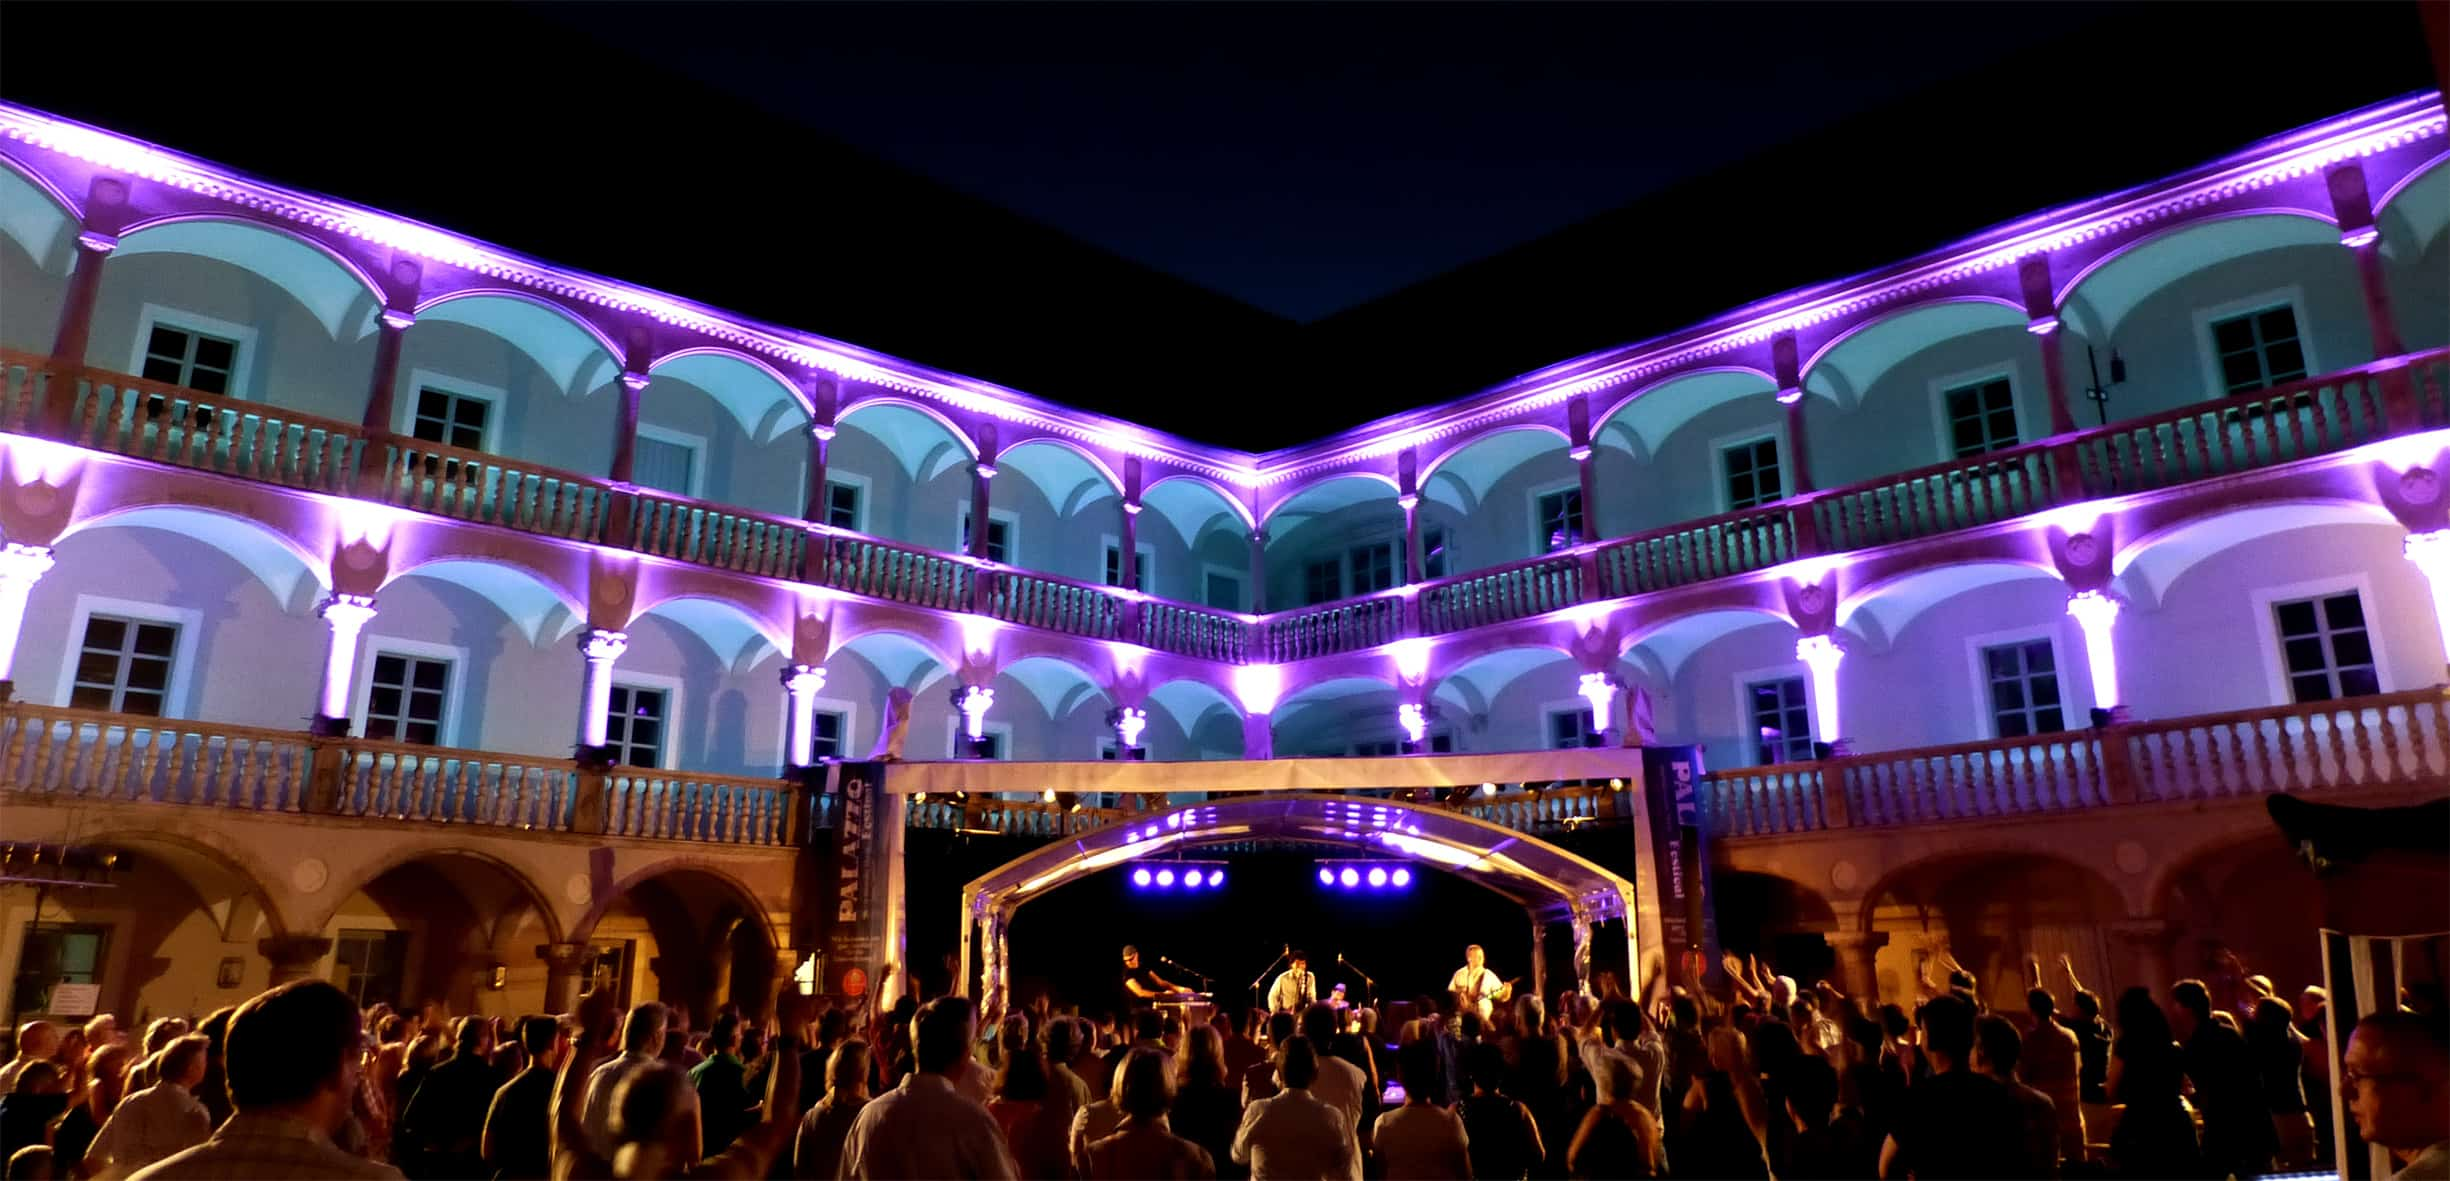 Ab 1. August: 20 Jahre Palazzo-Festival in Regensburg